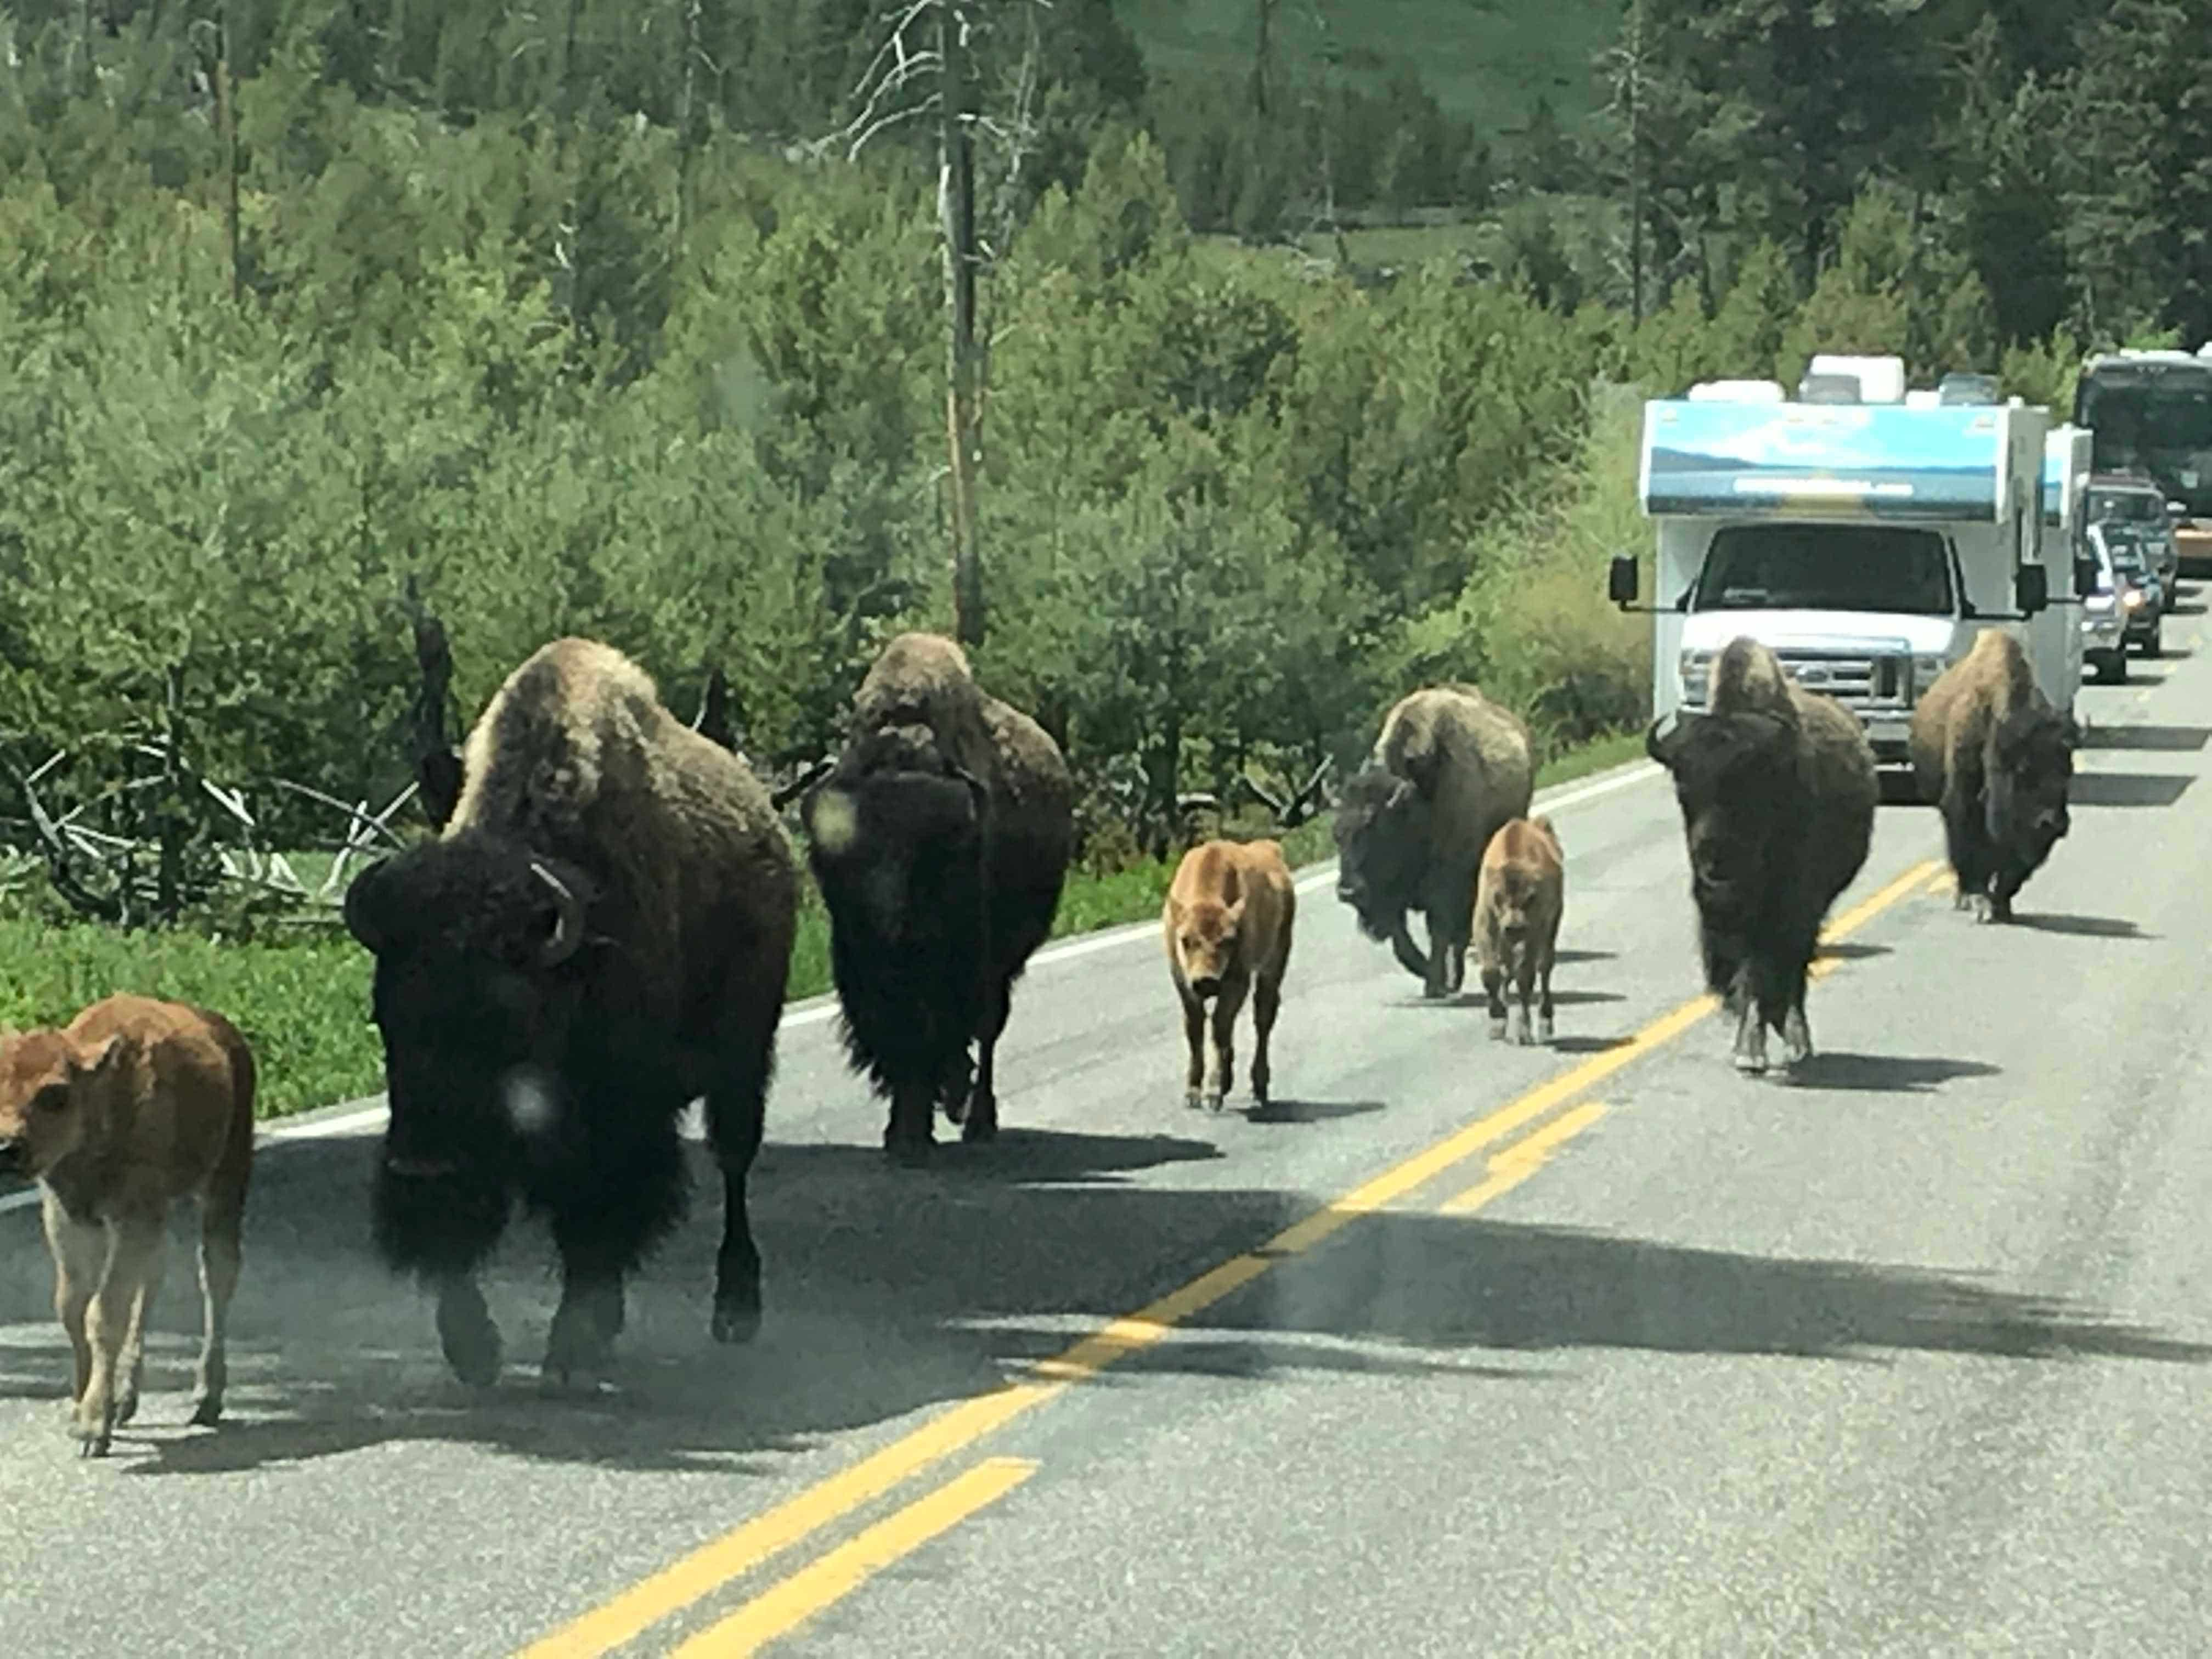 Bison block traffic as they amble along a road in Yellowstone National Park.